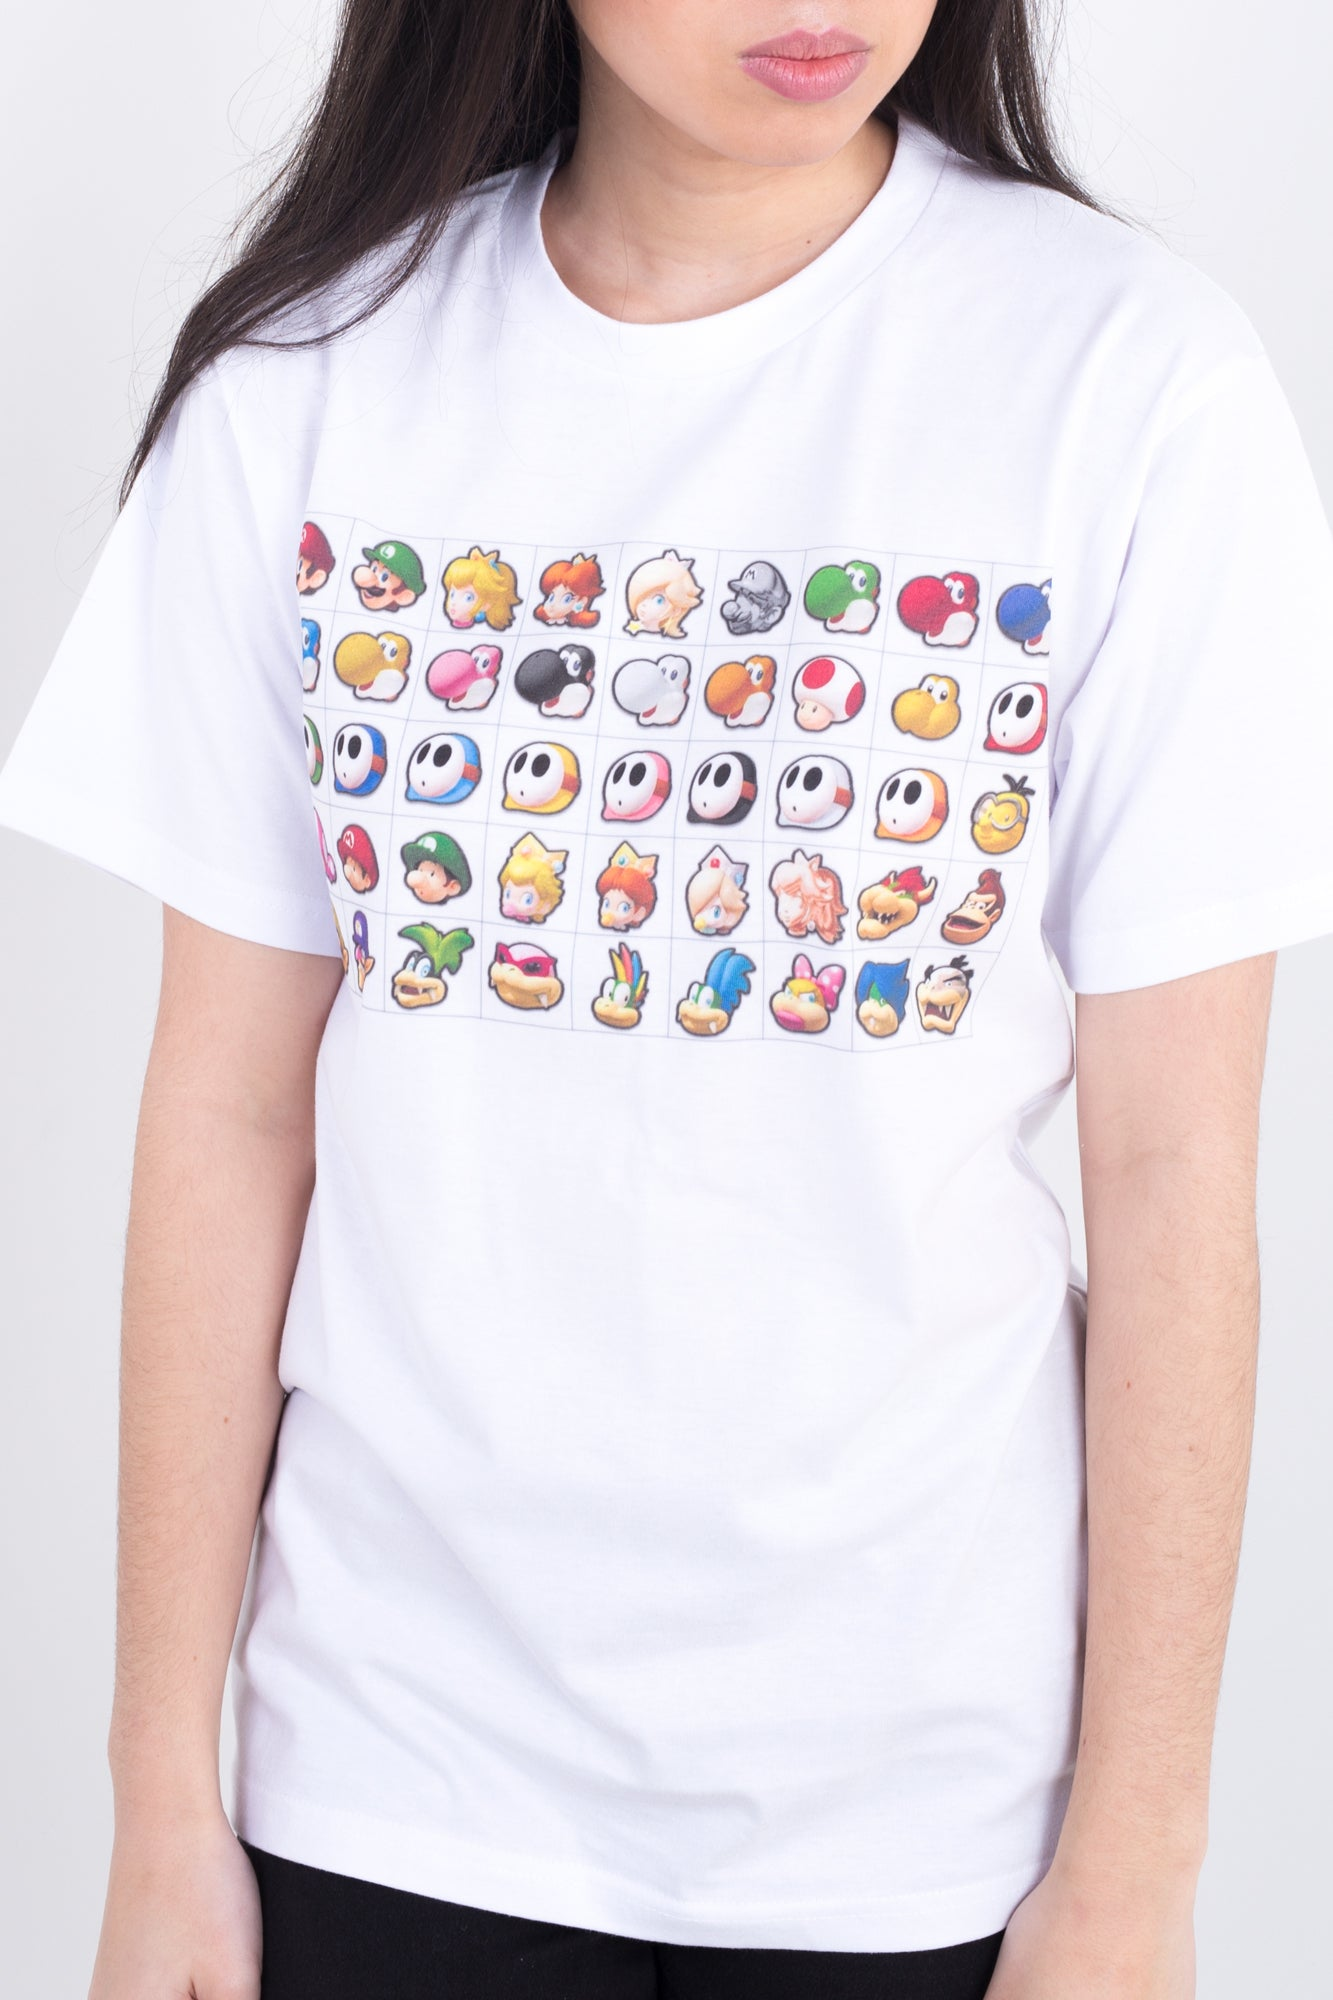 Mario Kart Player Select Tee